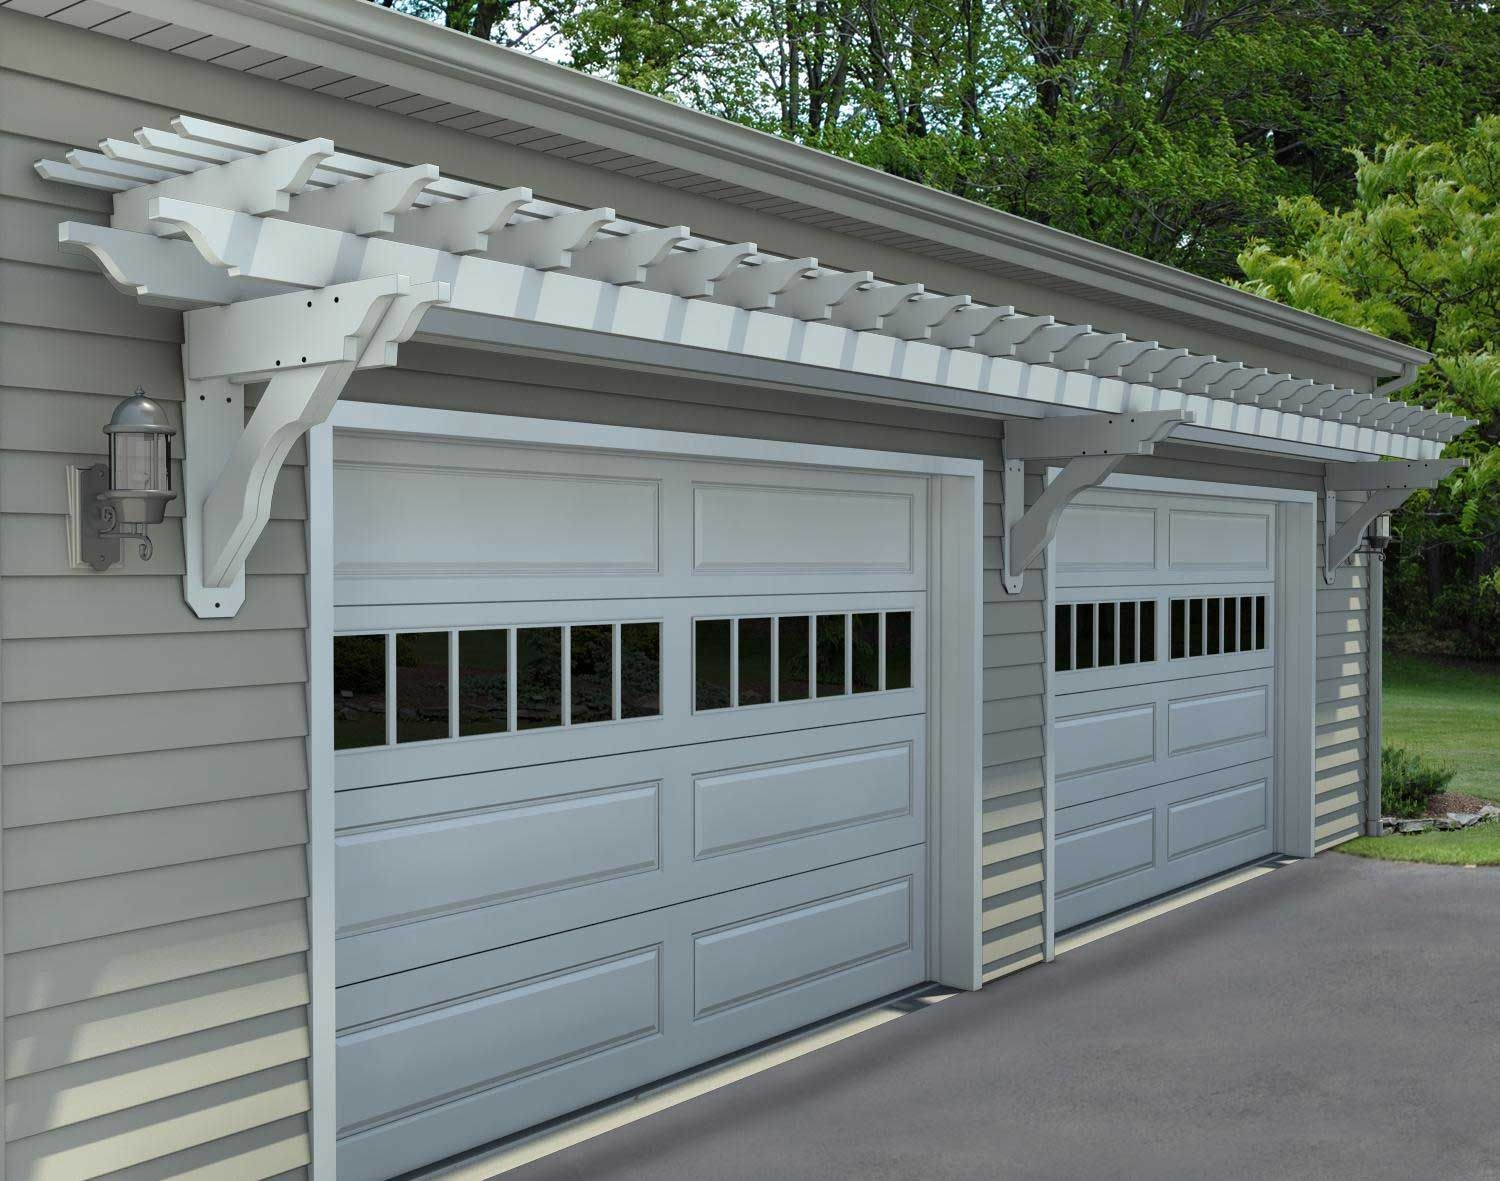 Trellis over garage door - How To Build An Attached Garage Pergola To Vinyl Siding Google Search